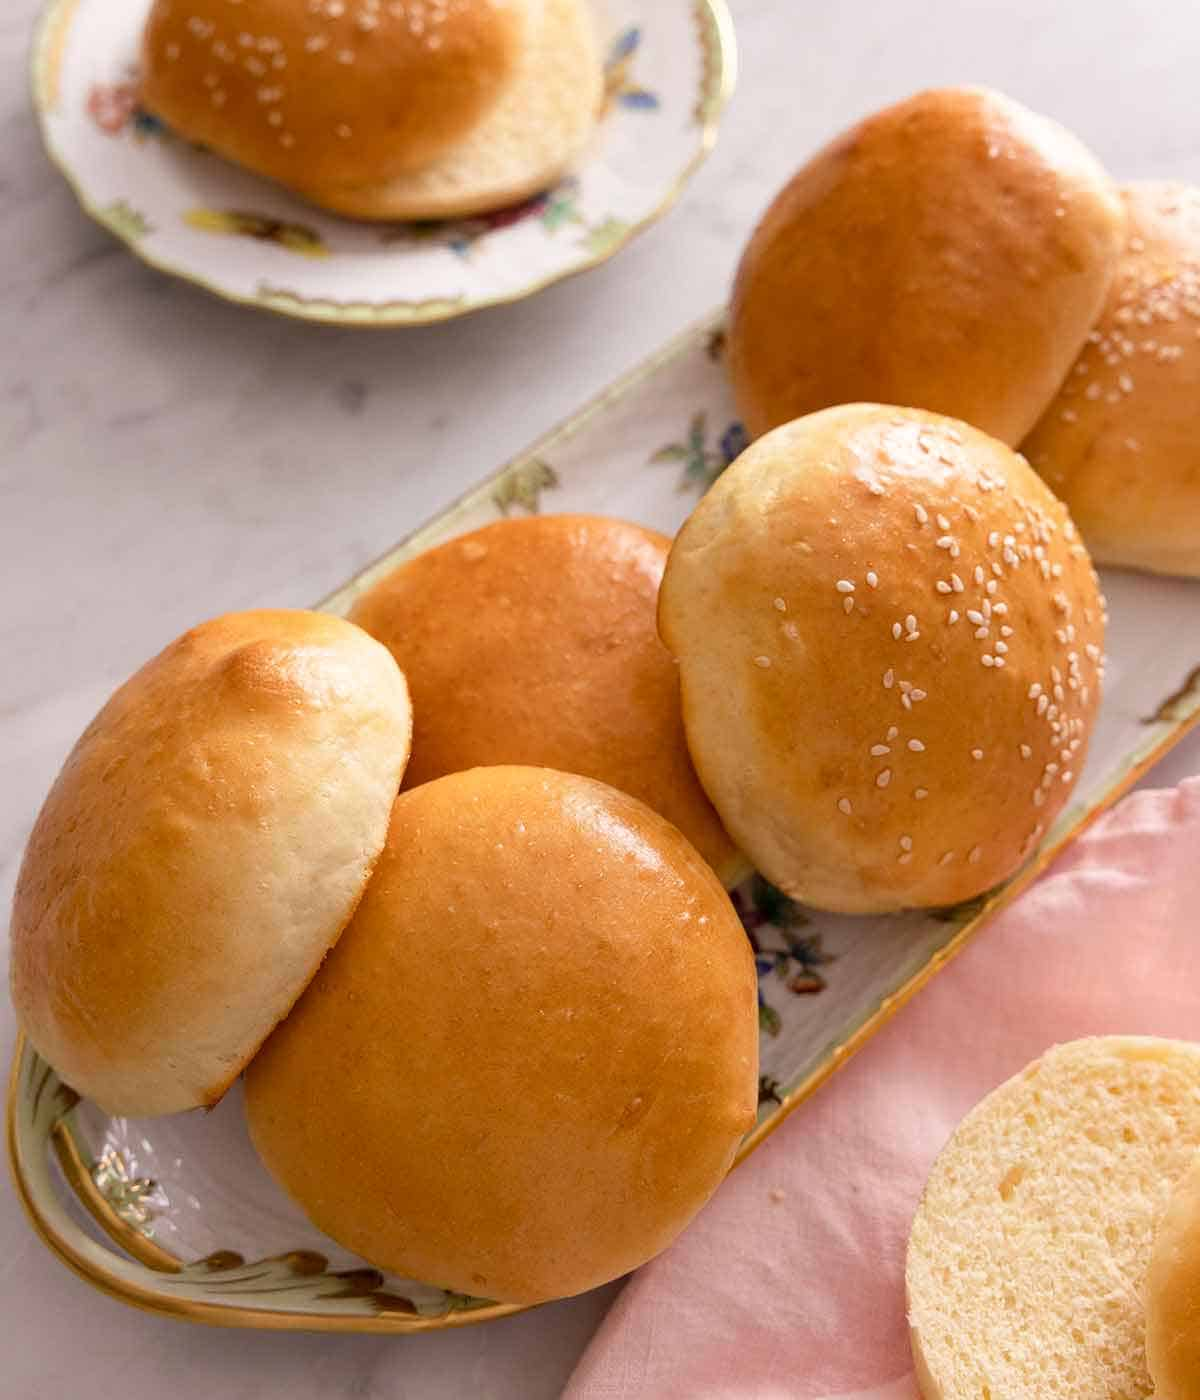 A serving platter of brioche buns with a couple of them topped with sesame seeds.